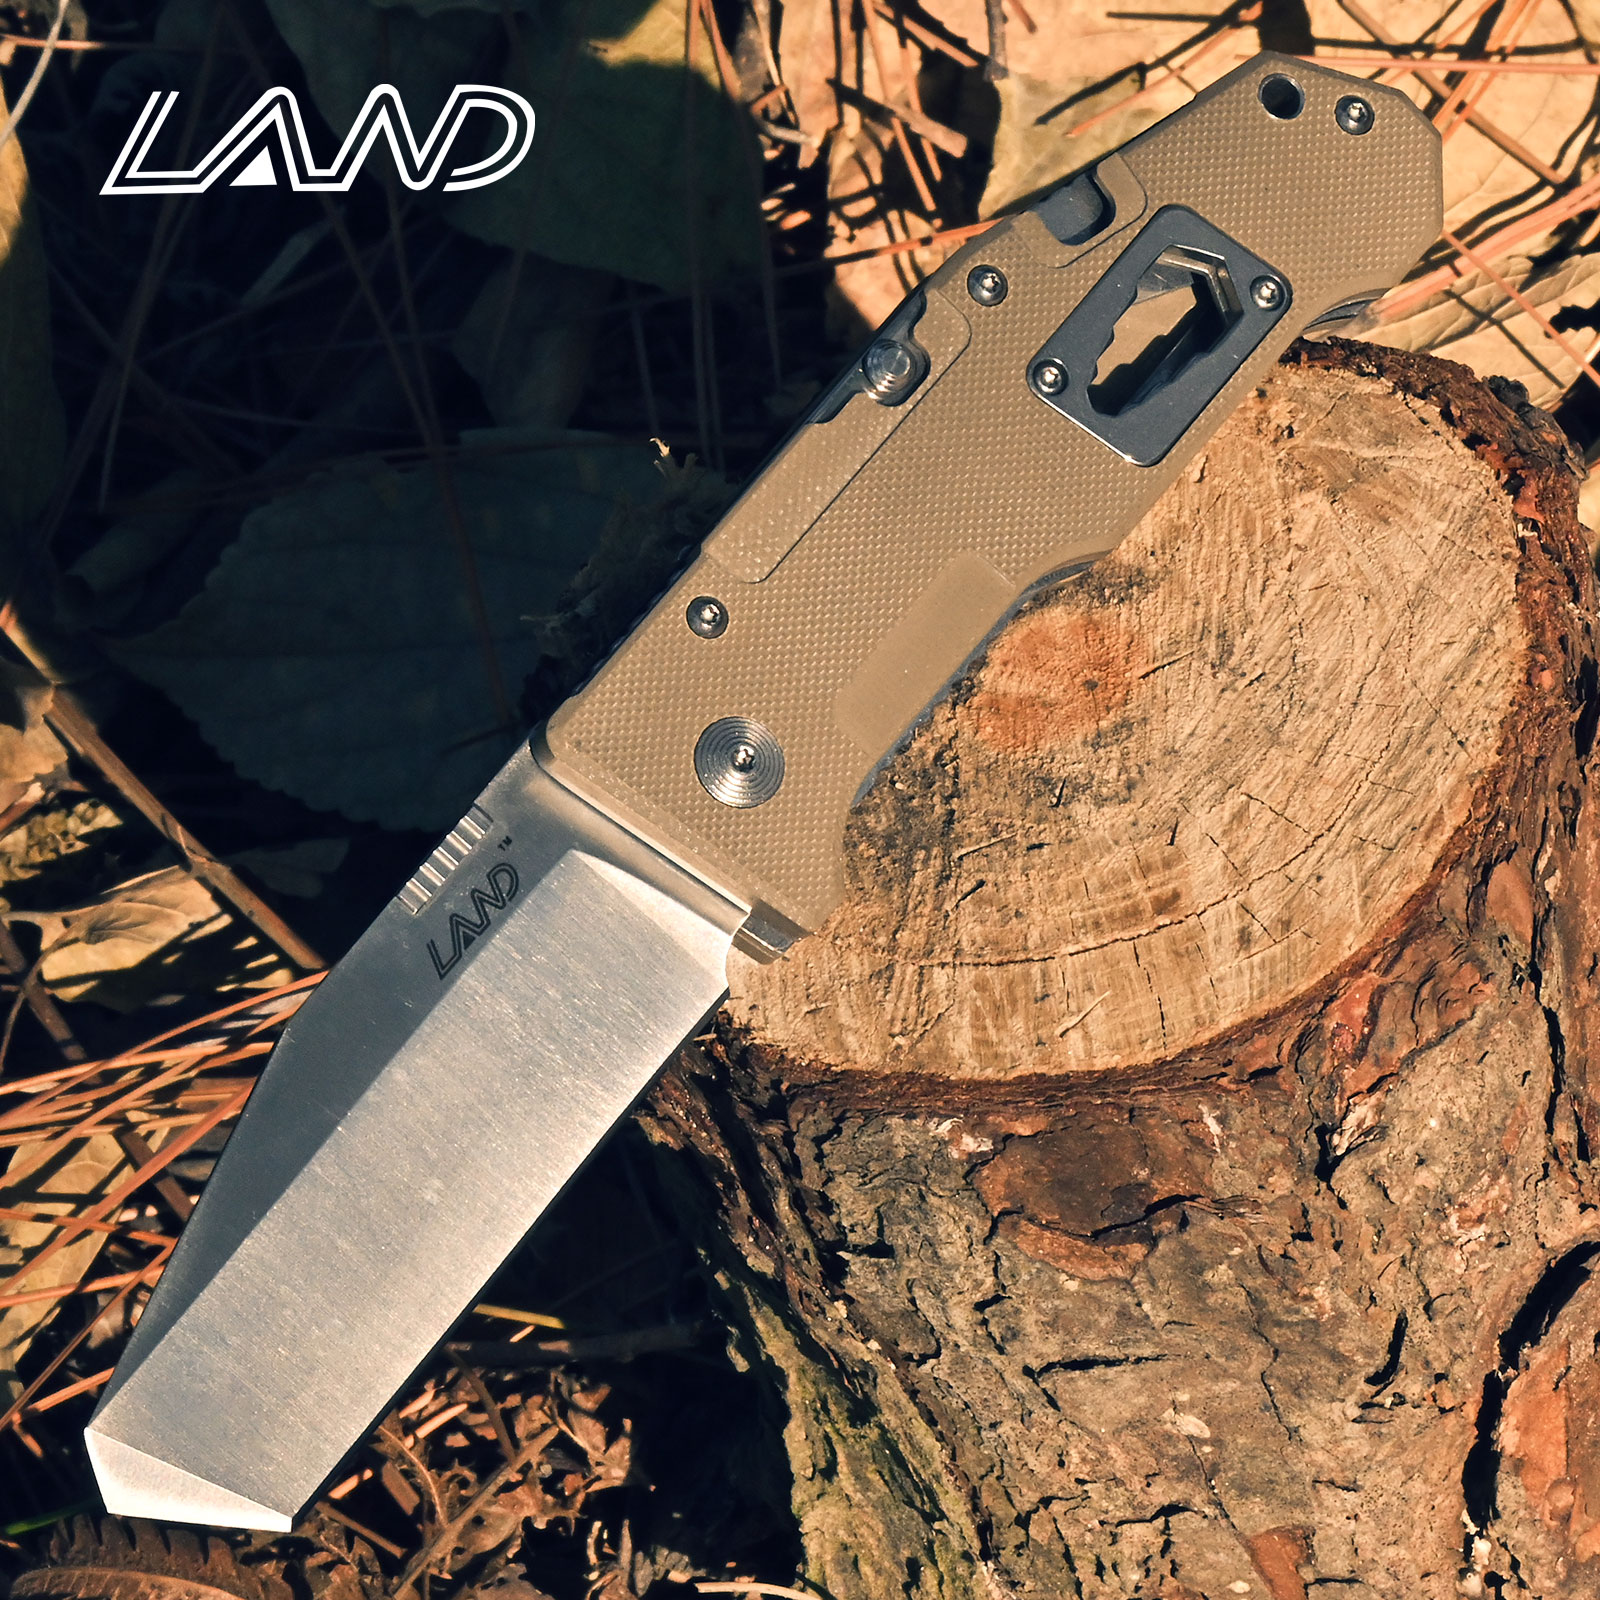 LAND 9046 Folding Multi-functional Knife Survival Camping Outdoor Folding Hunting Saw Tool Knife 12cr27mov Stainless Steel